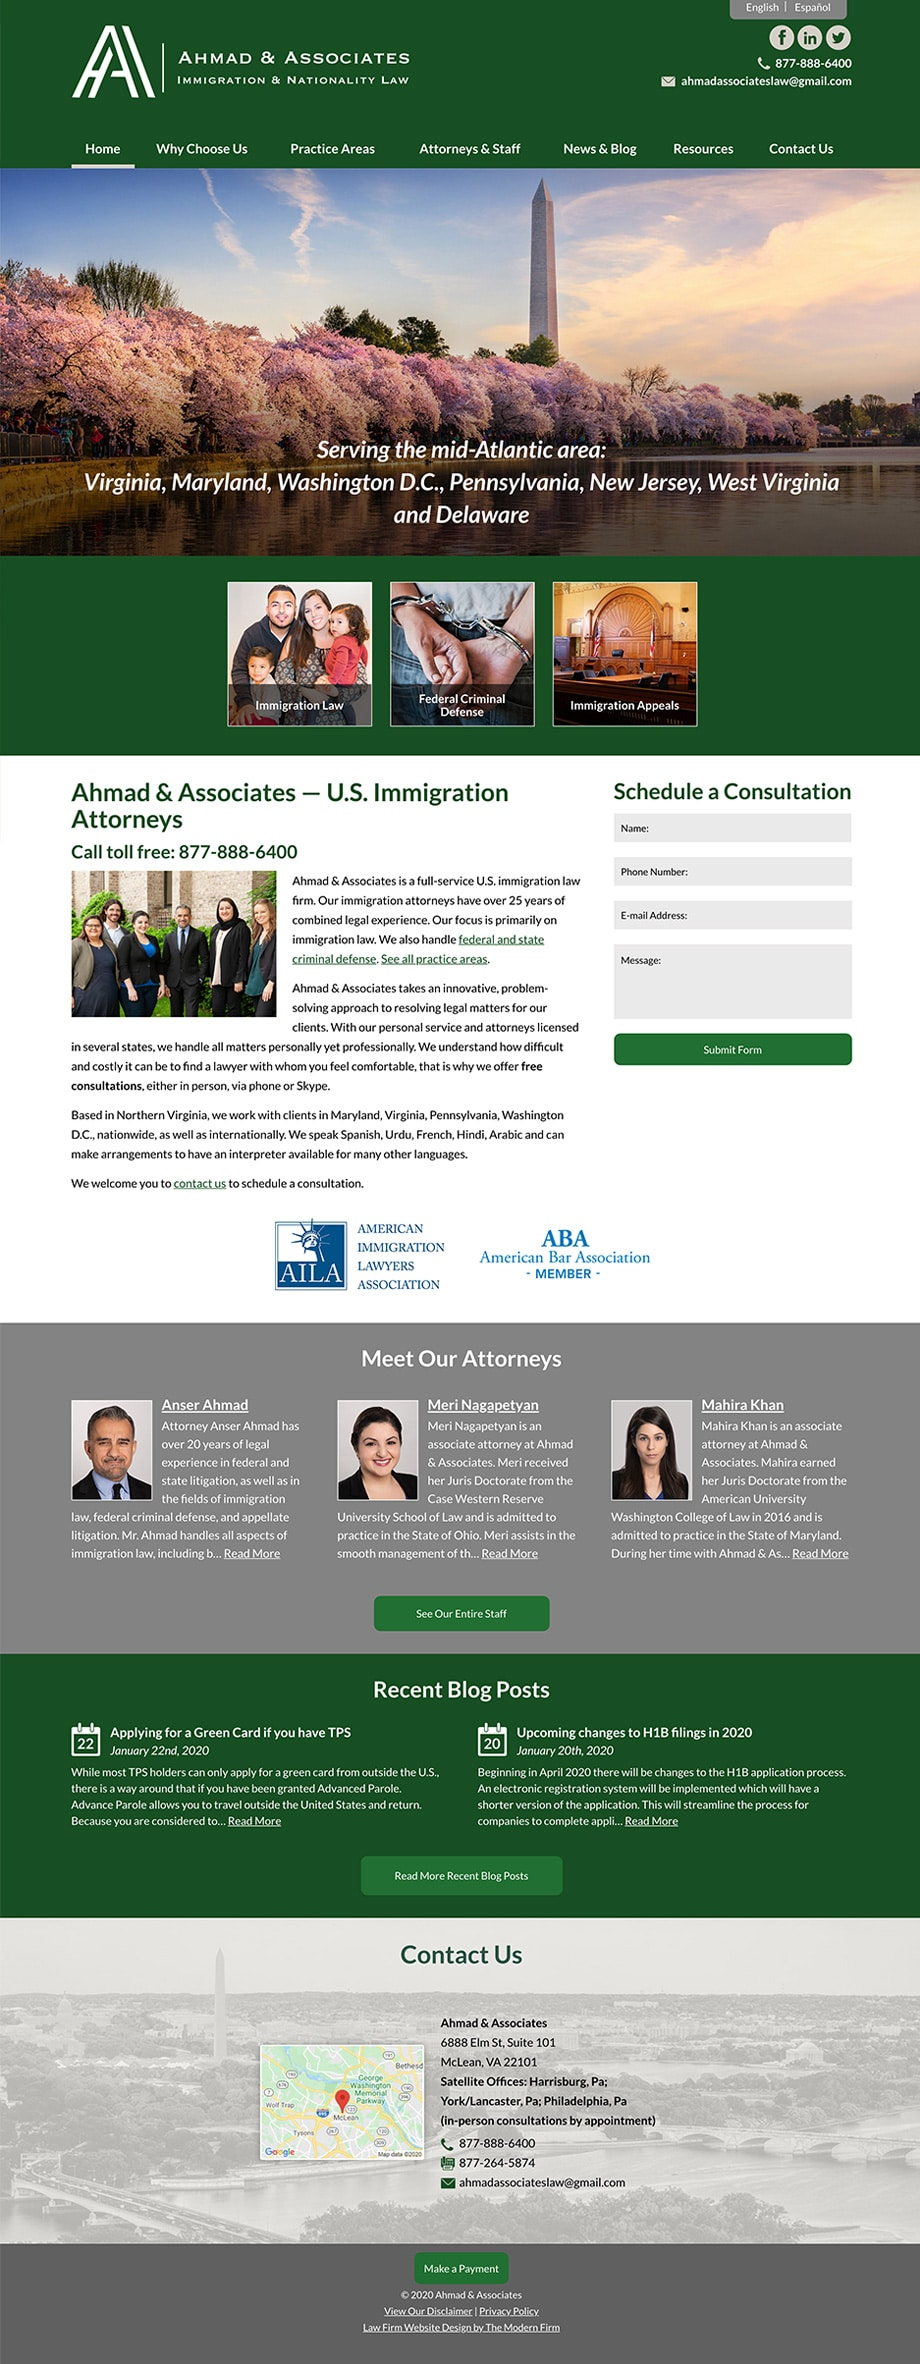 Law Firm Website Design for Ahmad & Associates